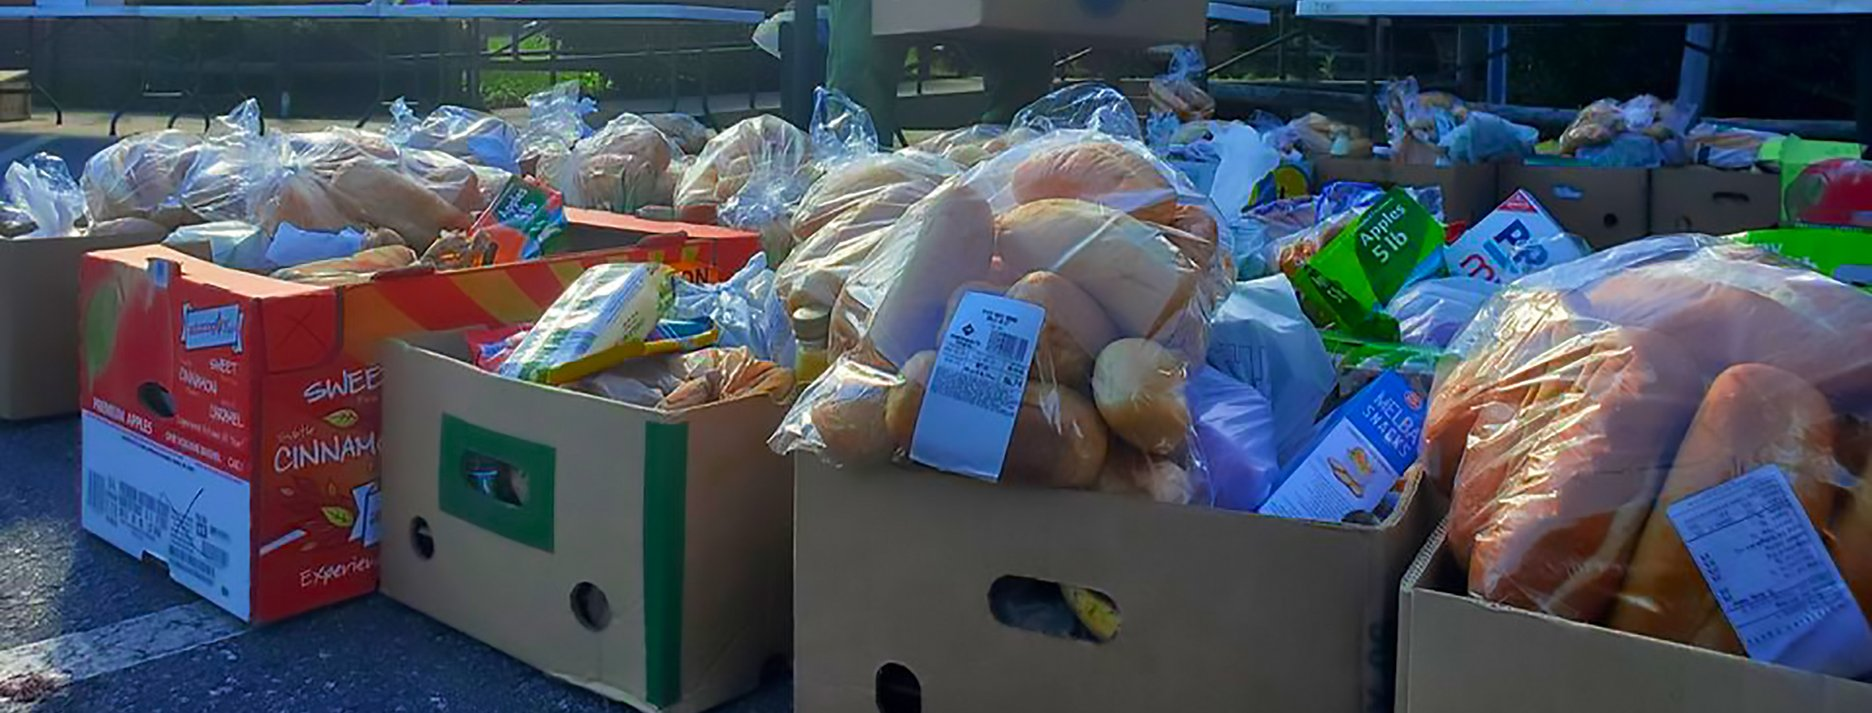 Cypress Creek team recognizes anniversary of COVID-19 by raising $23,008 to address hunger